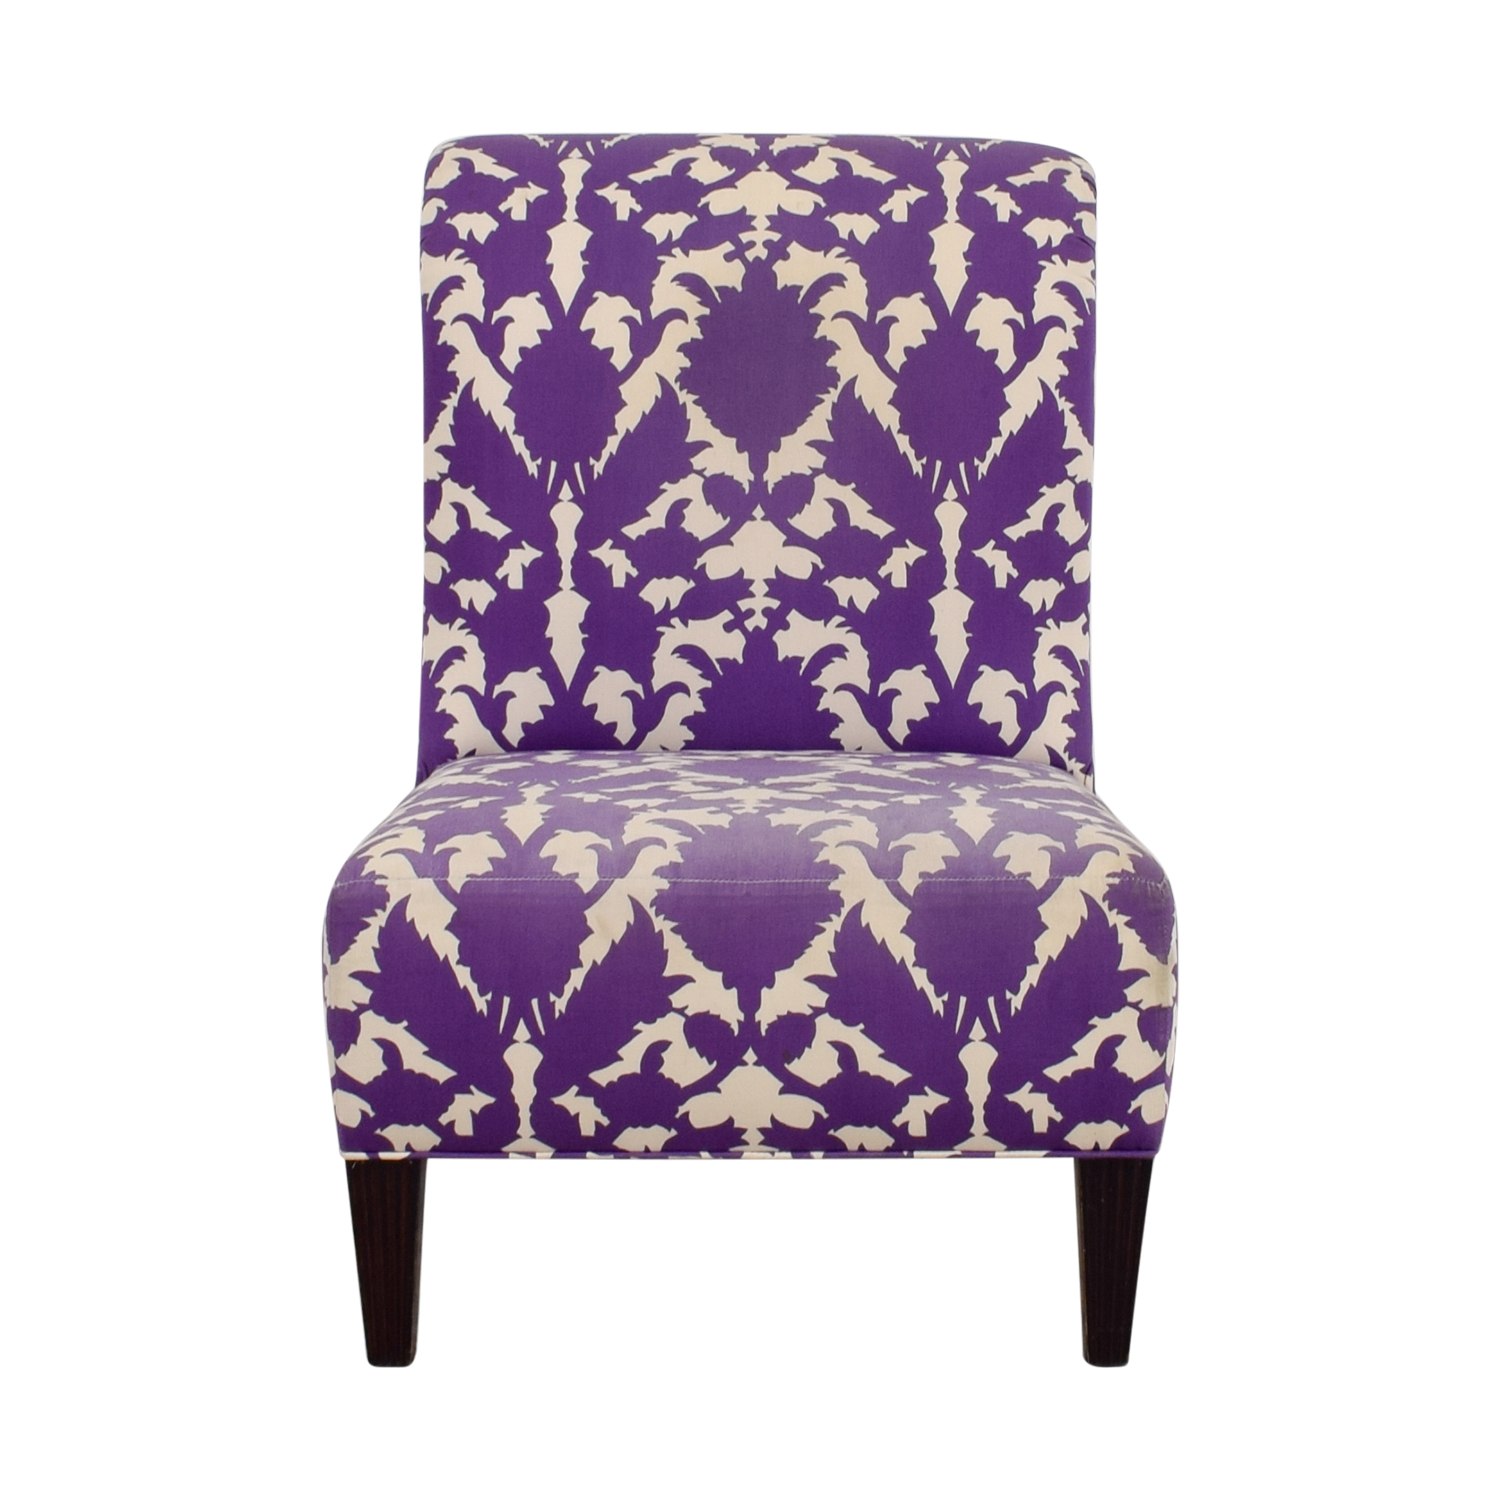 Baker Baker Madeline Weintraub Purple Accent Chair used